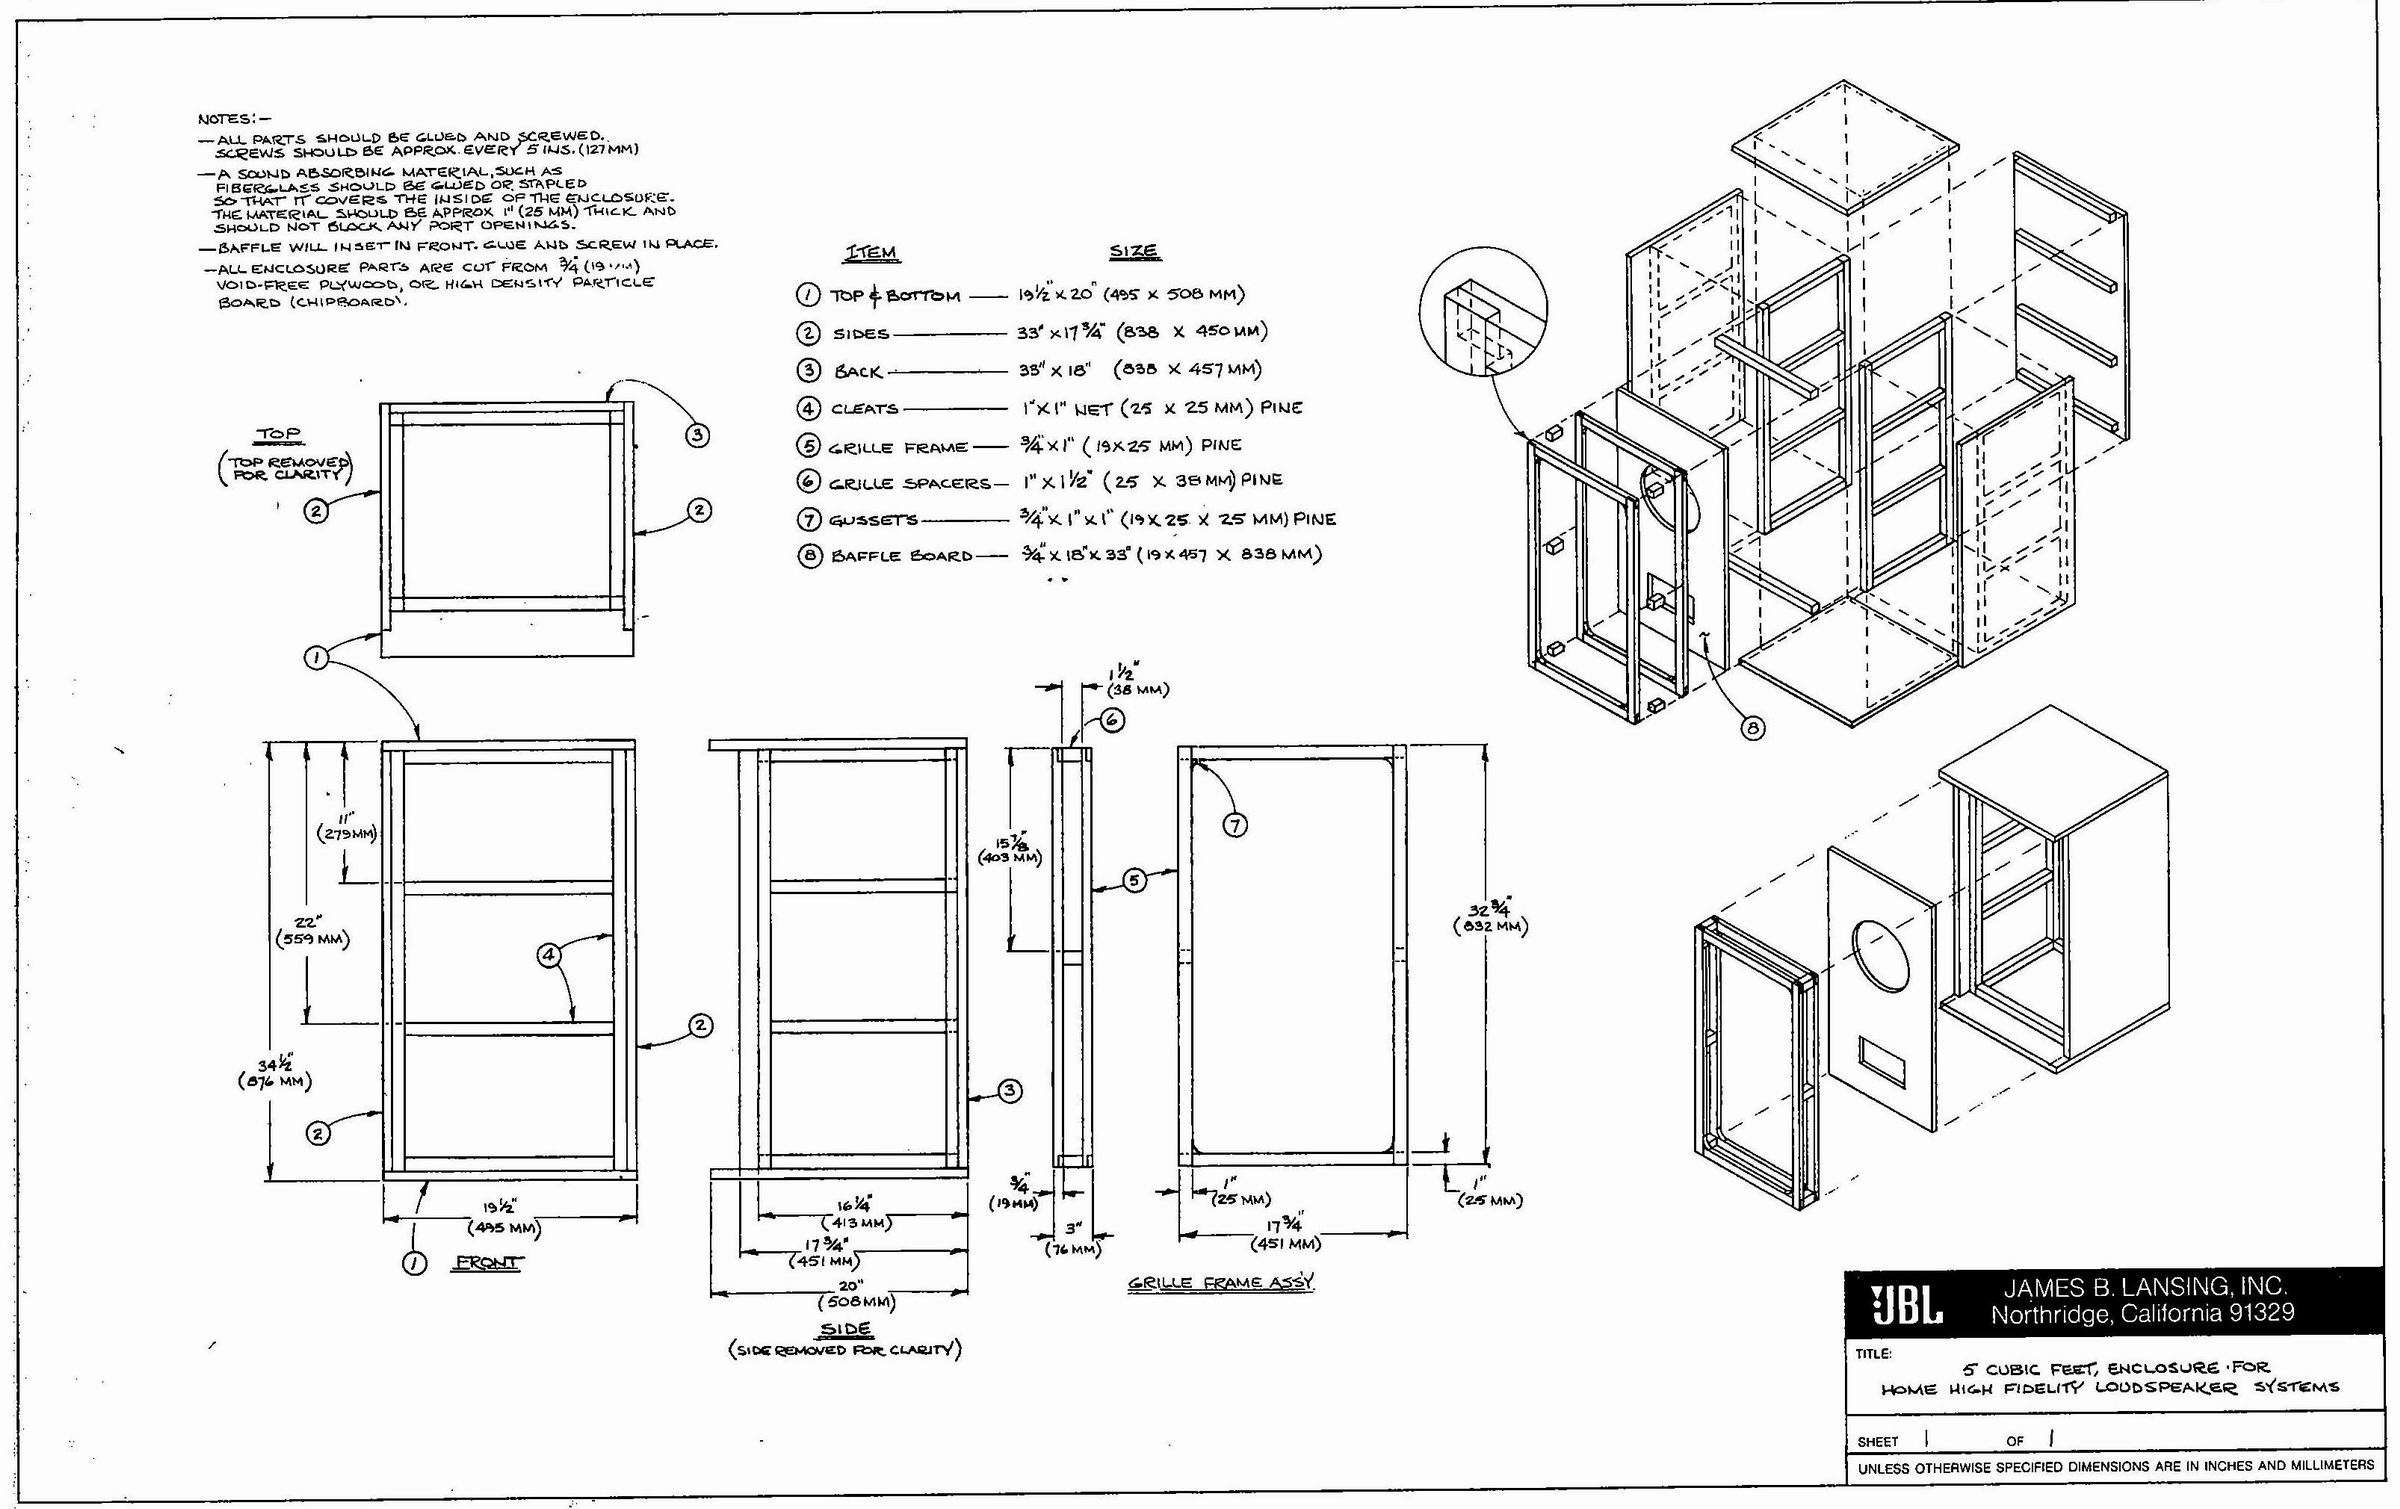 Vintage Jbl Cabinet Build Recommendations Diyaudio